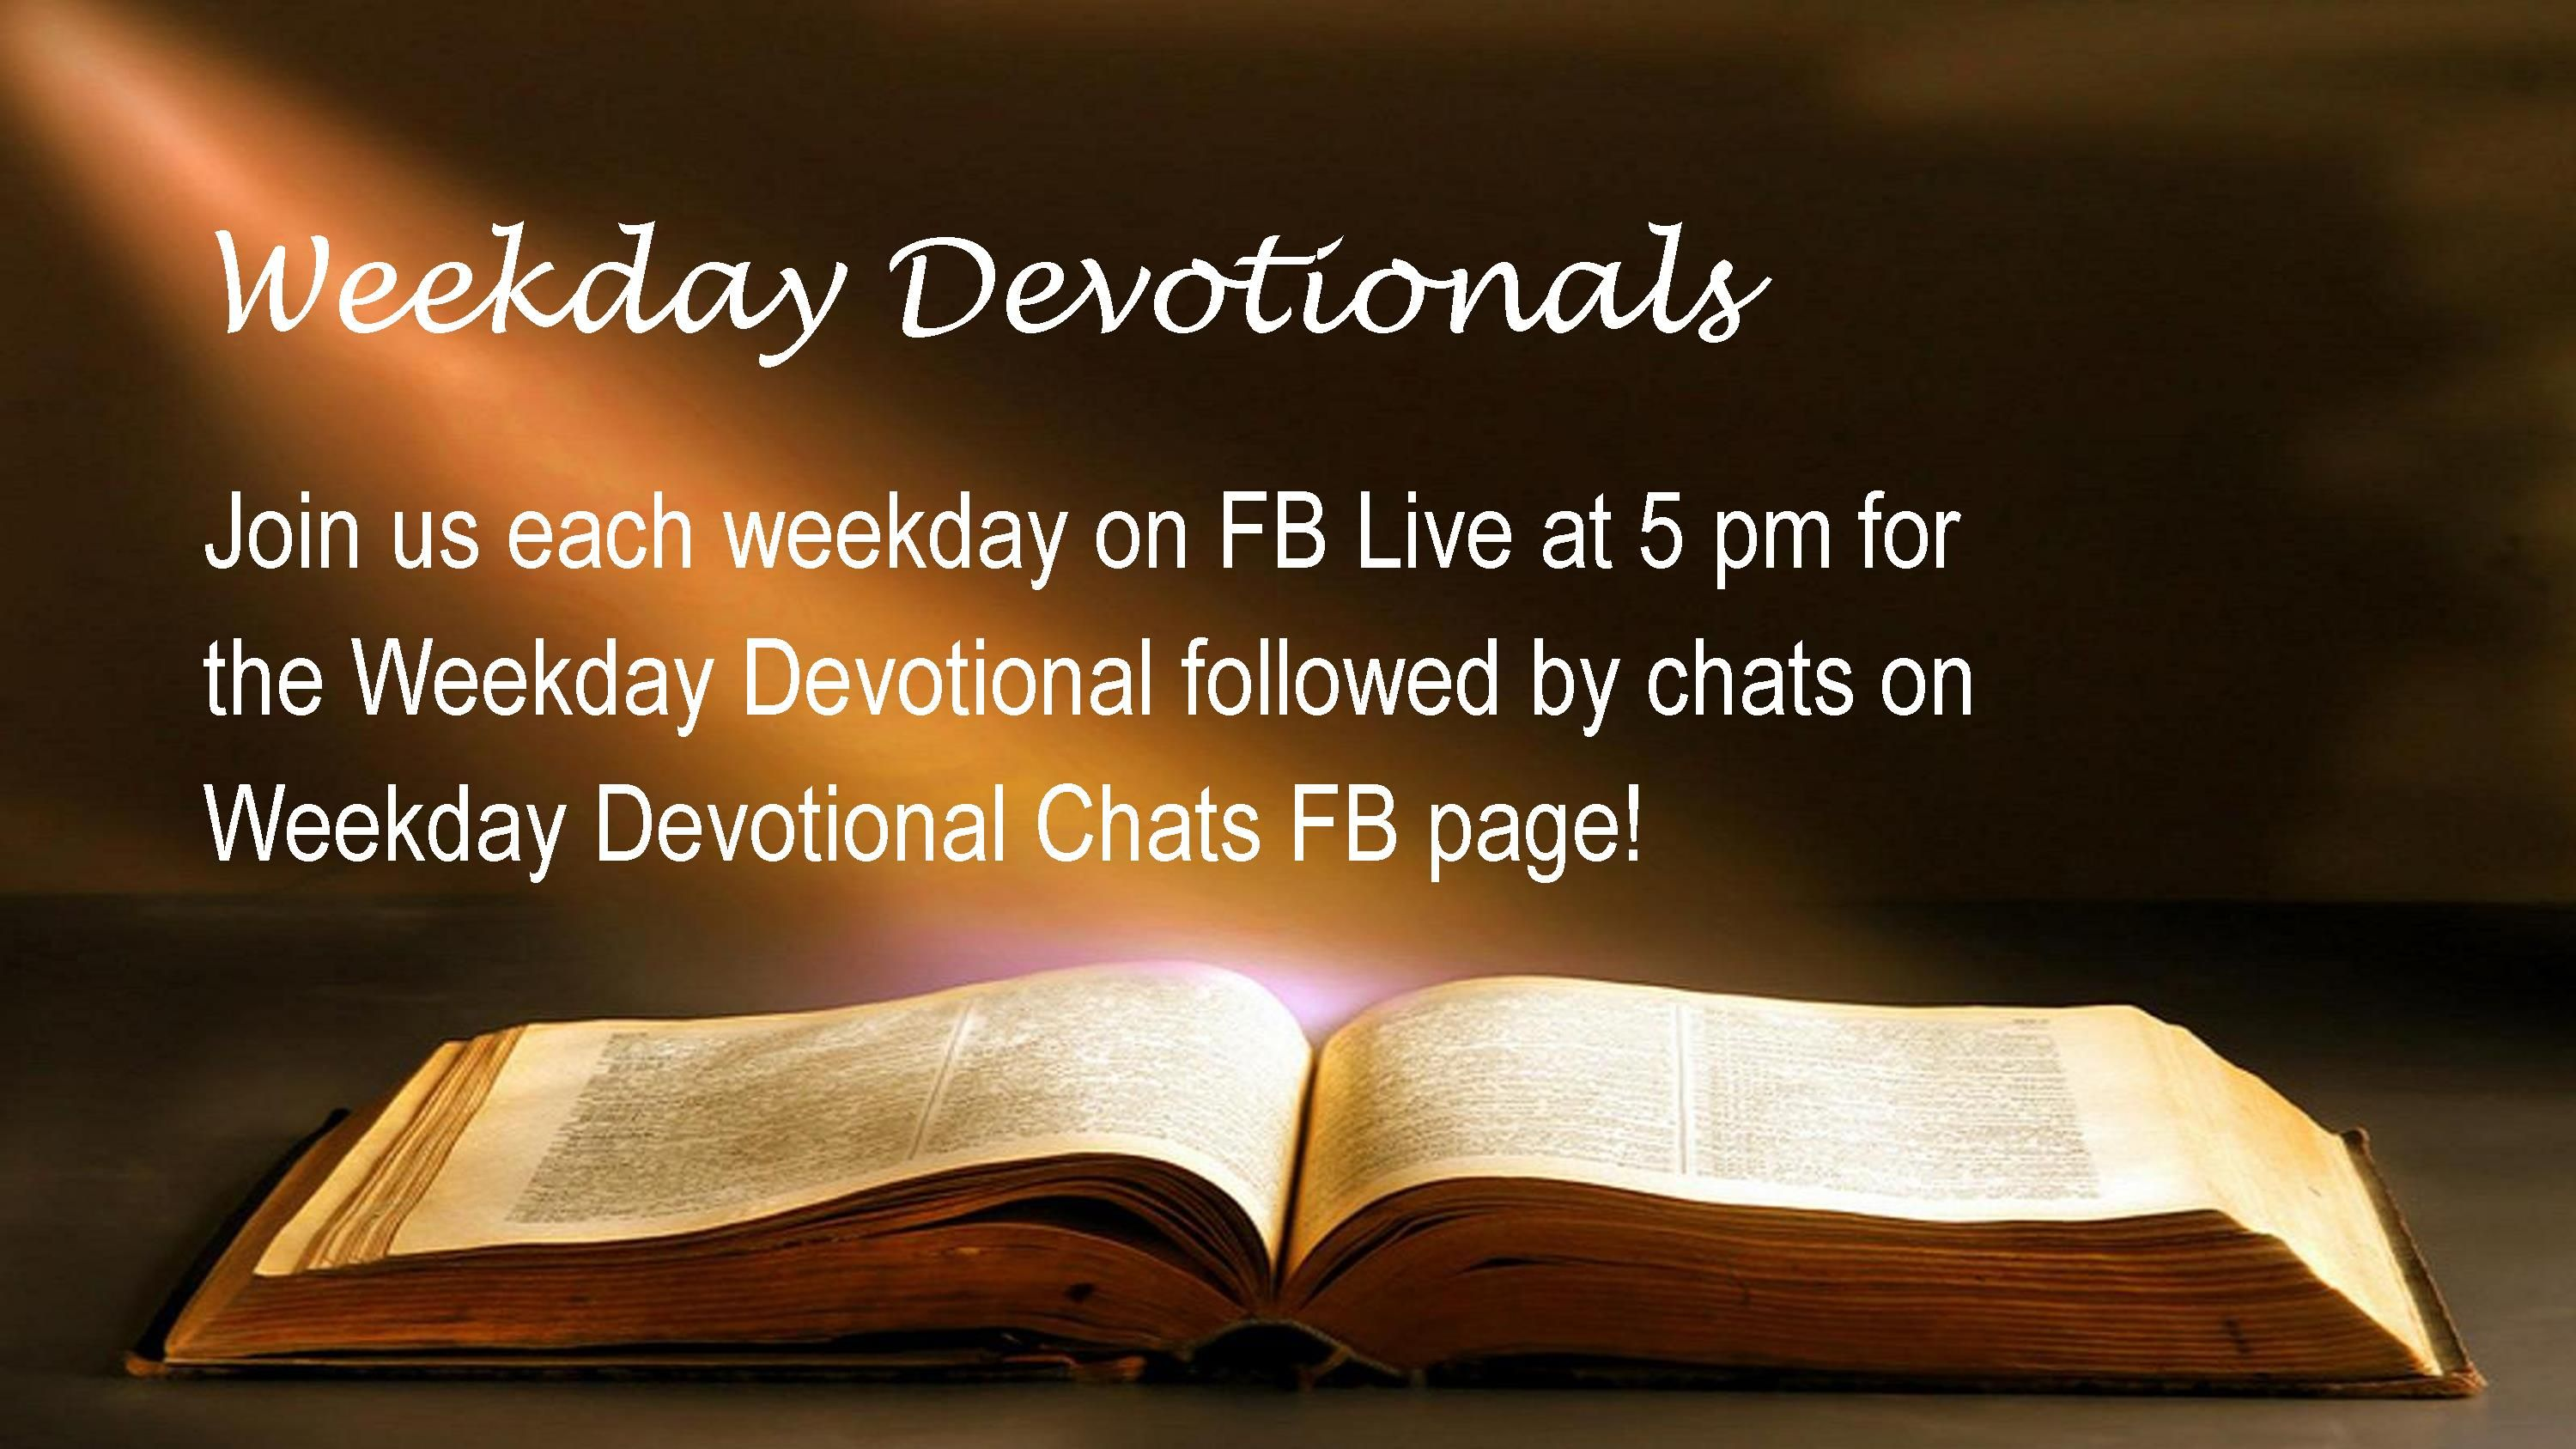 Weekday Devotional Worship Slide